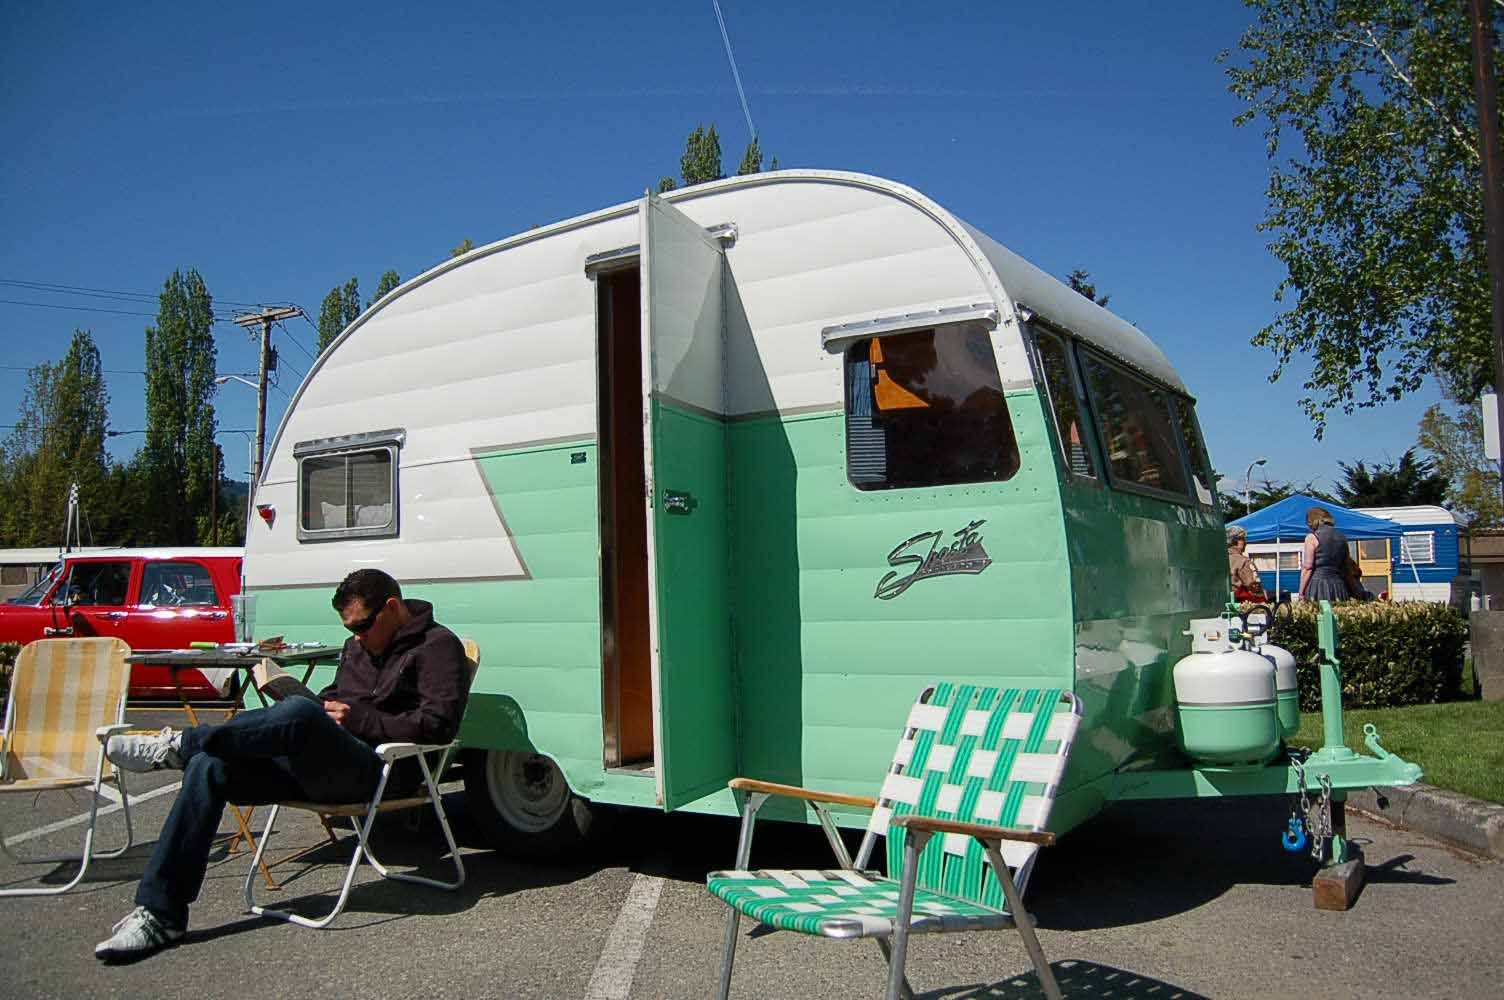 1956 Shasta Trailer In Mint Green And White With Silver Stripe Love The